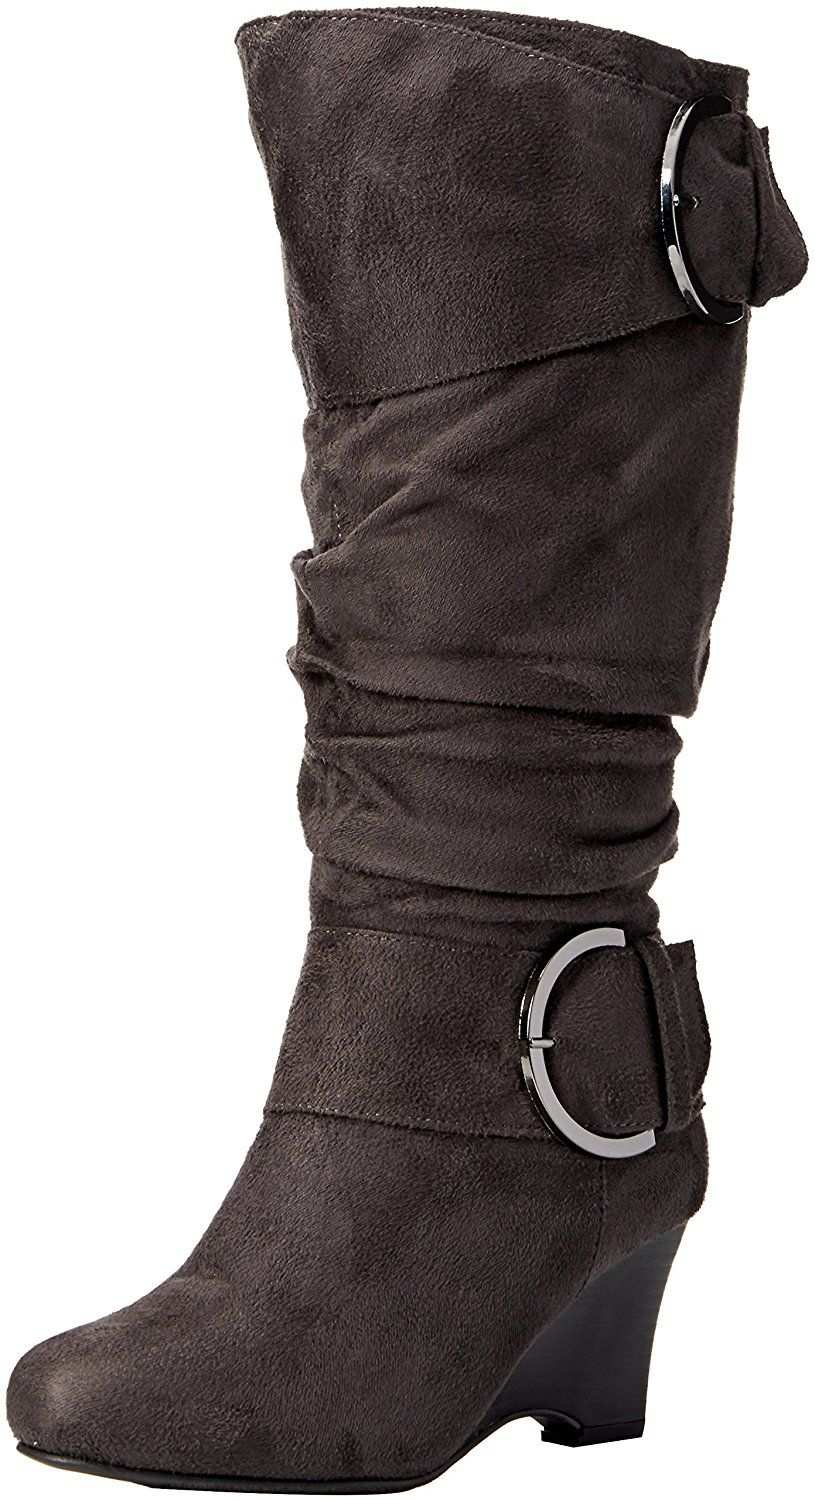 a4cdd5dd1ee9 Brinley Co Women s Melbourne 05 Slouch Boot Regular Wide Calf     This is an